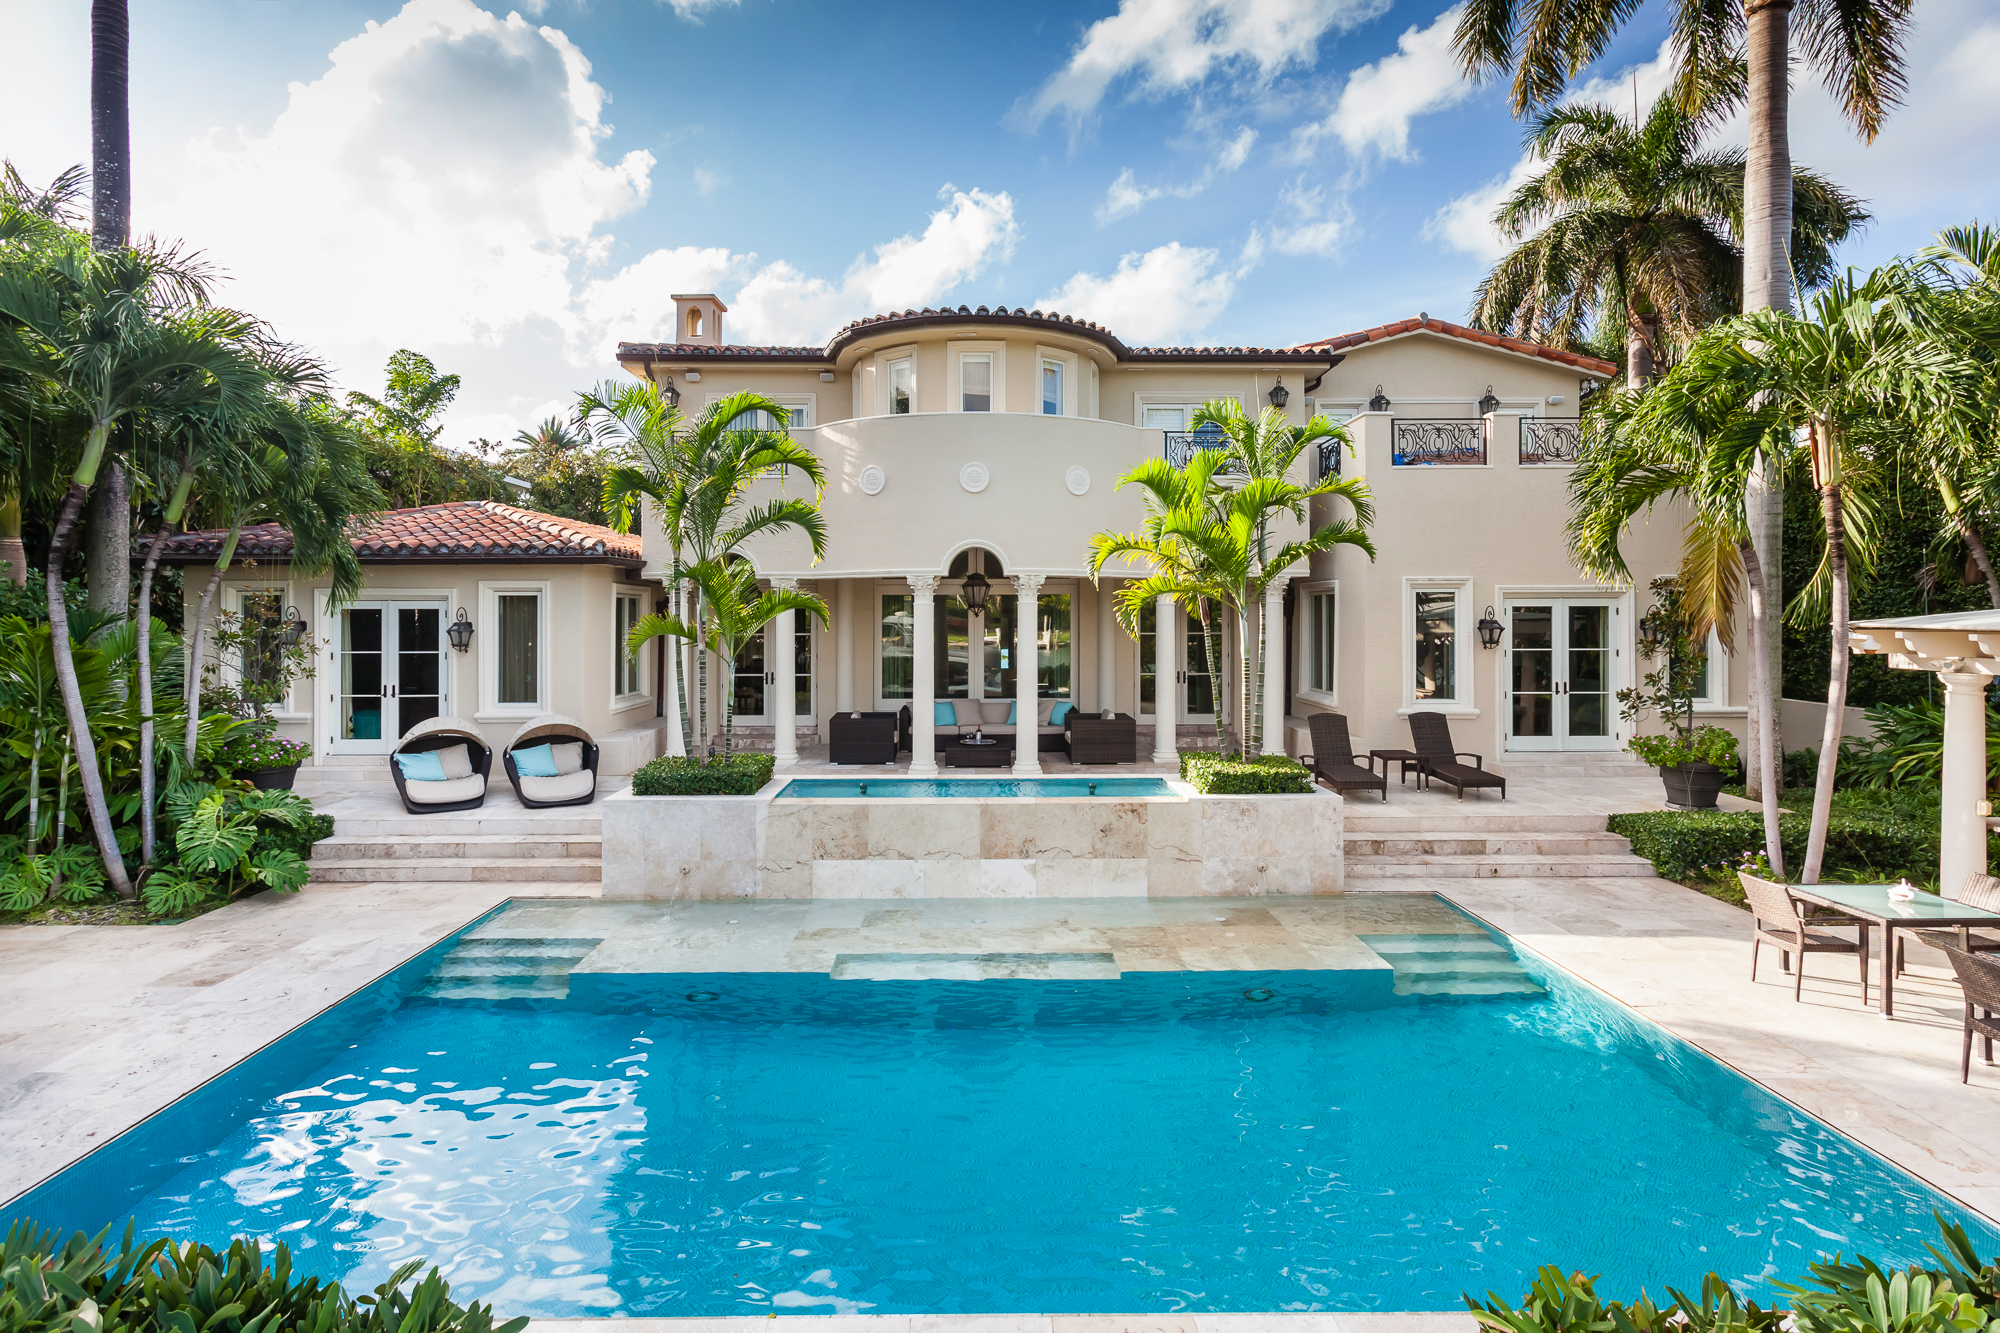 Luxury Home of the Week: Grand Mediterranean Style Mansion on Private Miami Island Offered at $14.995M